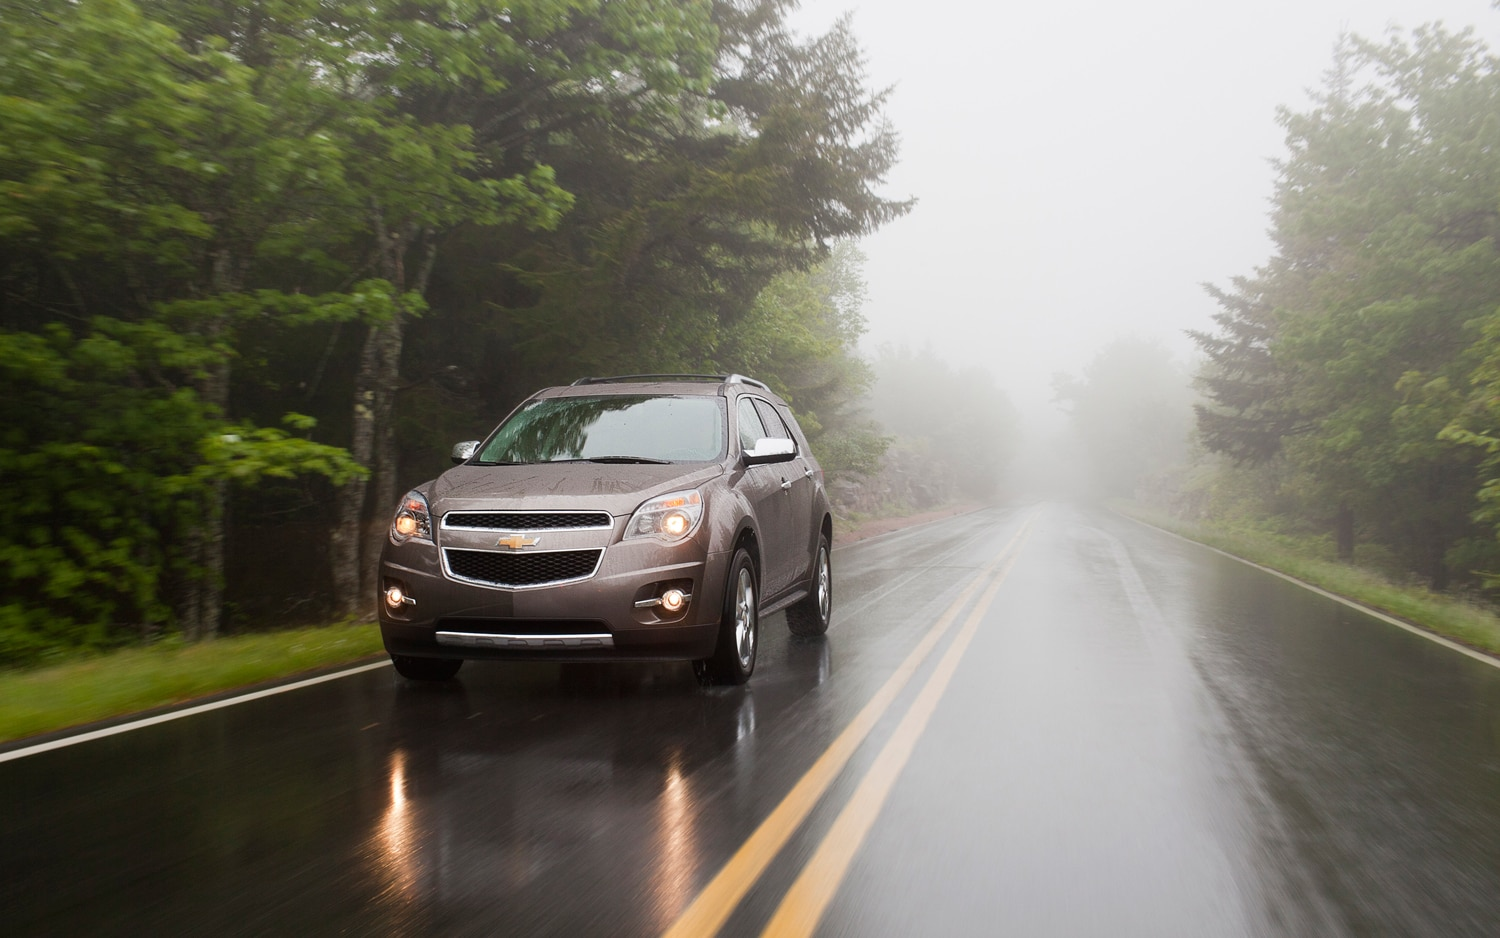 2013 Chevrolet Equinox Front View In Motion